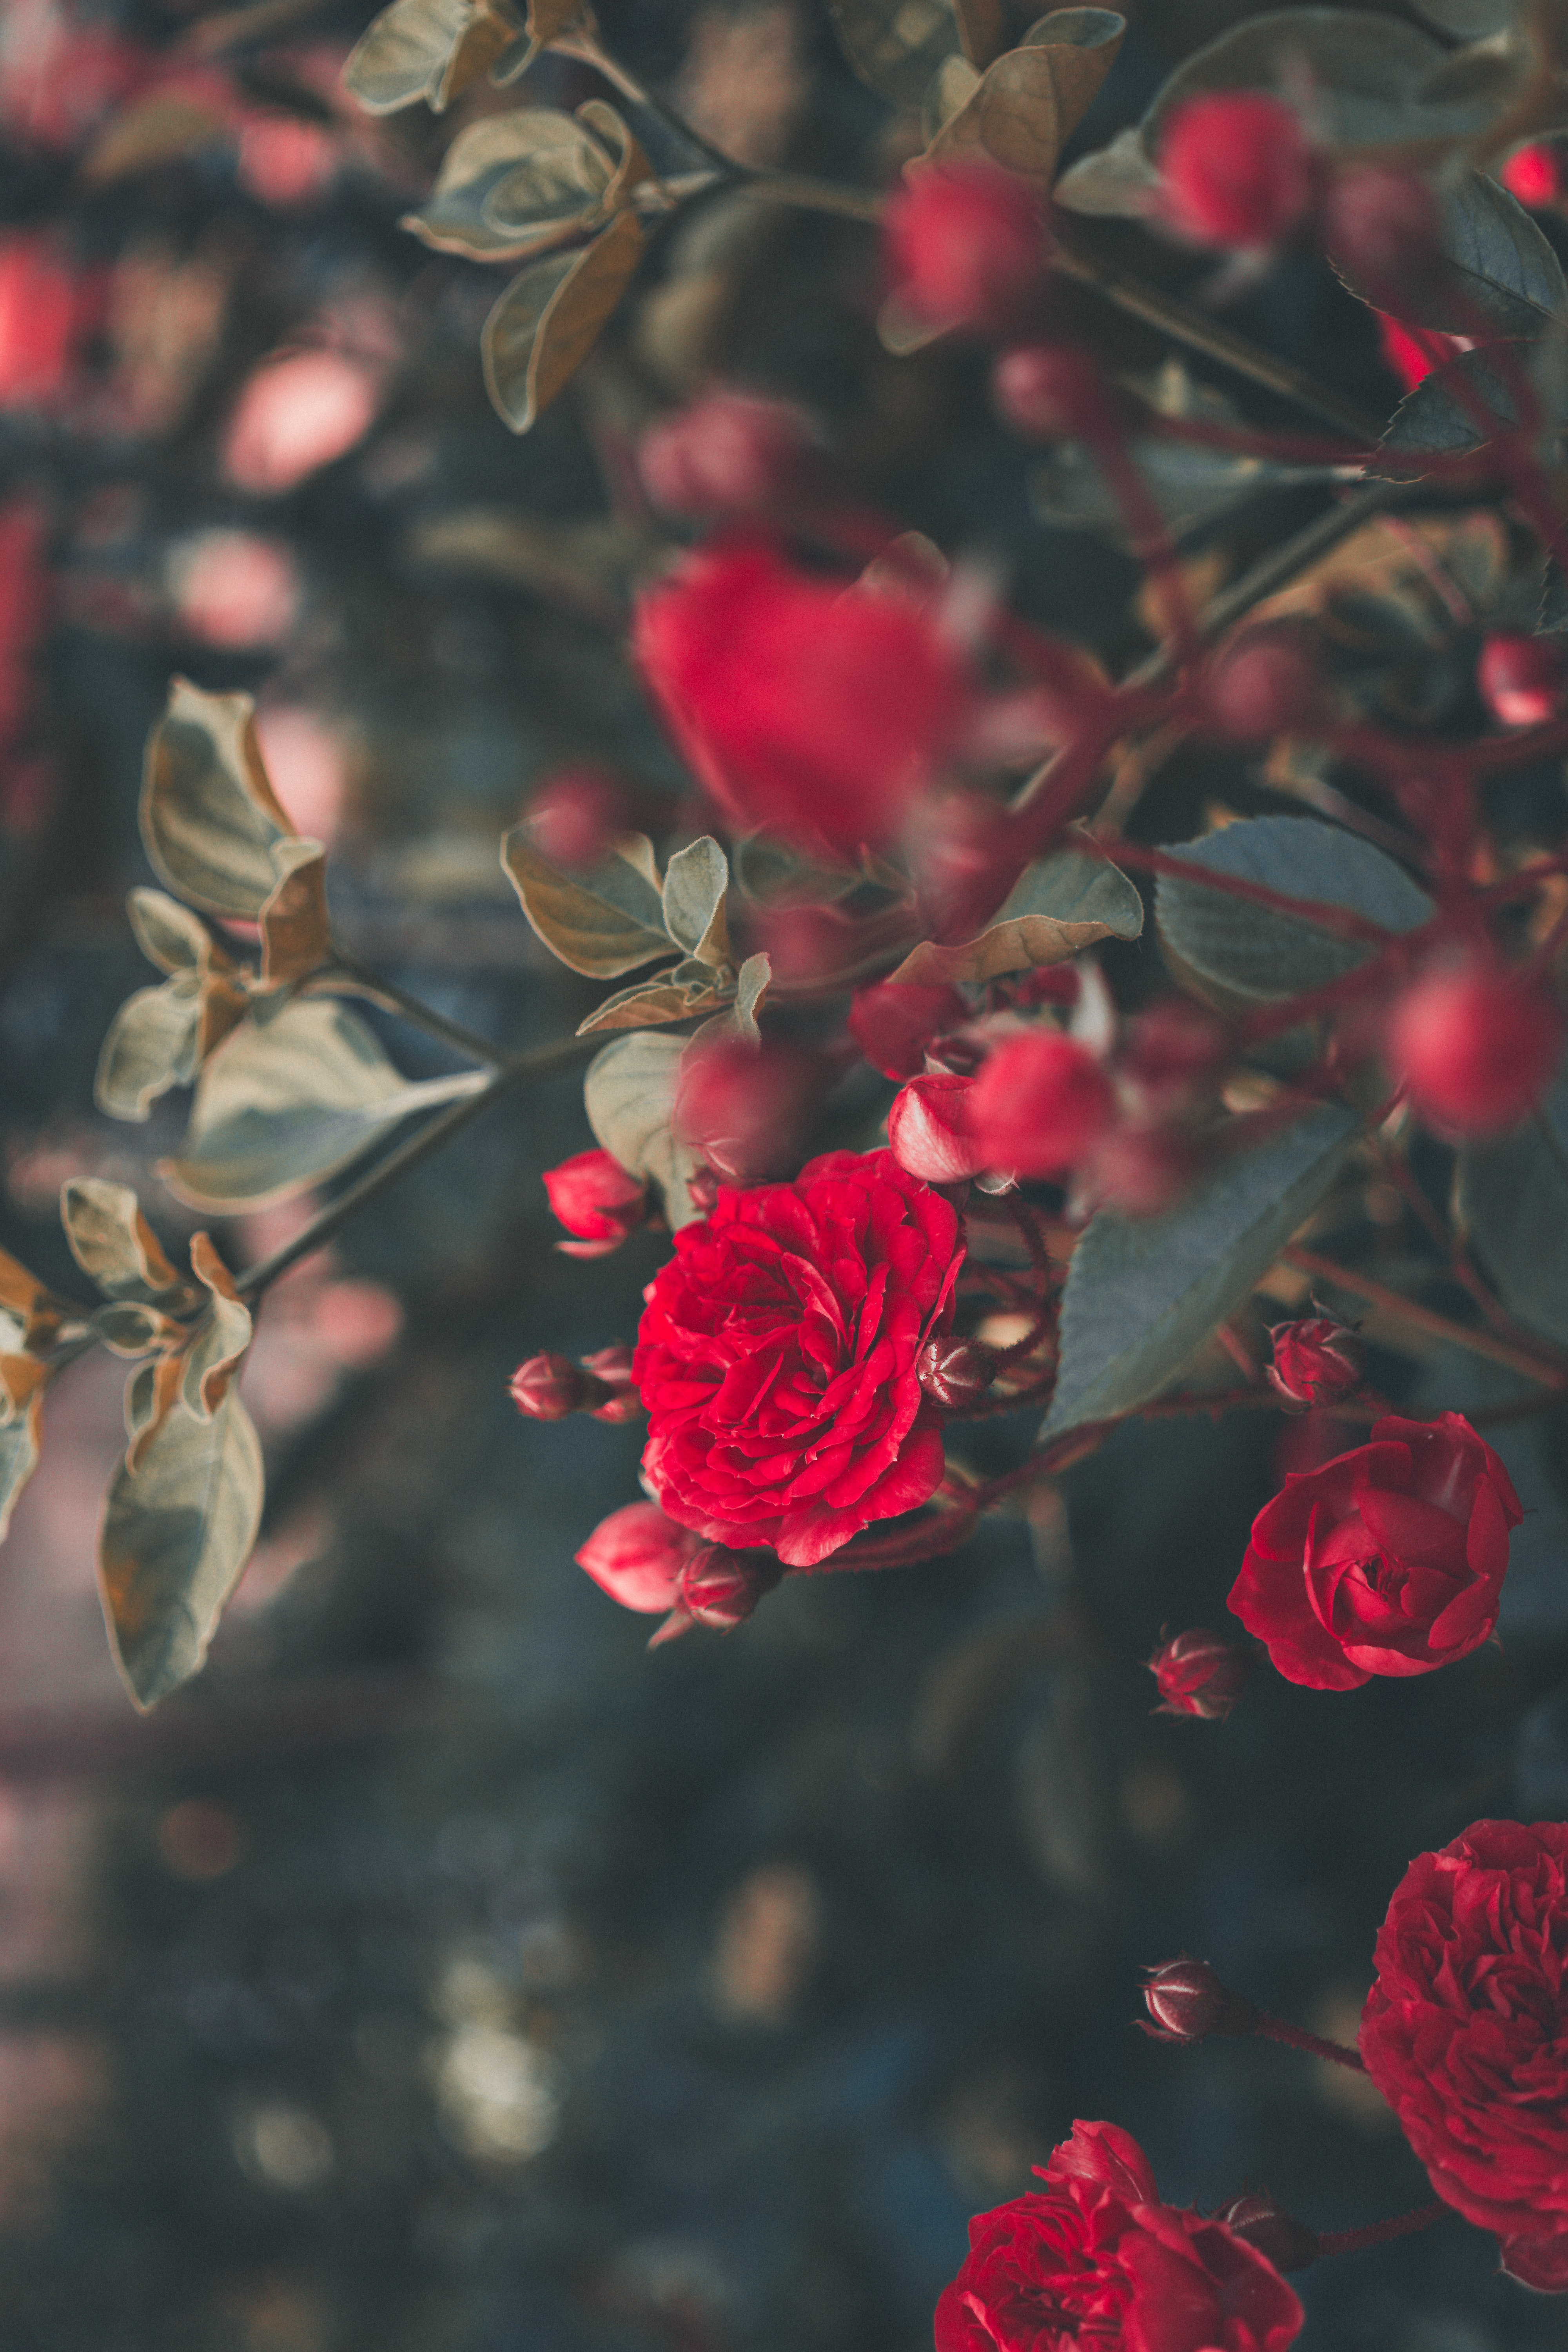 Red Roses stories